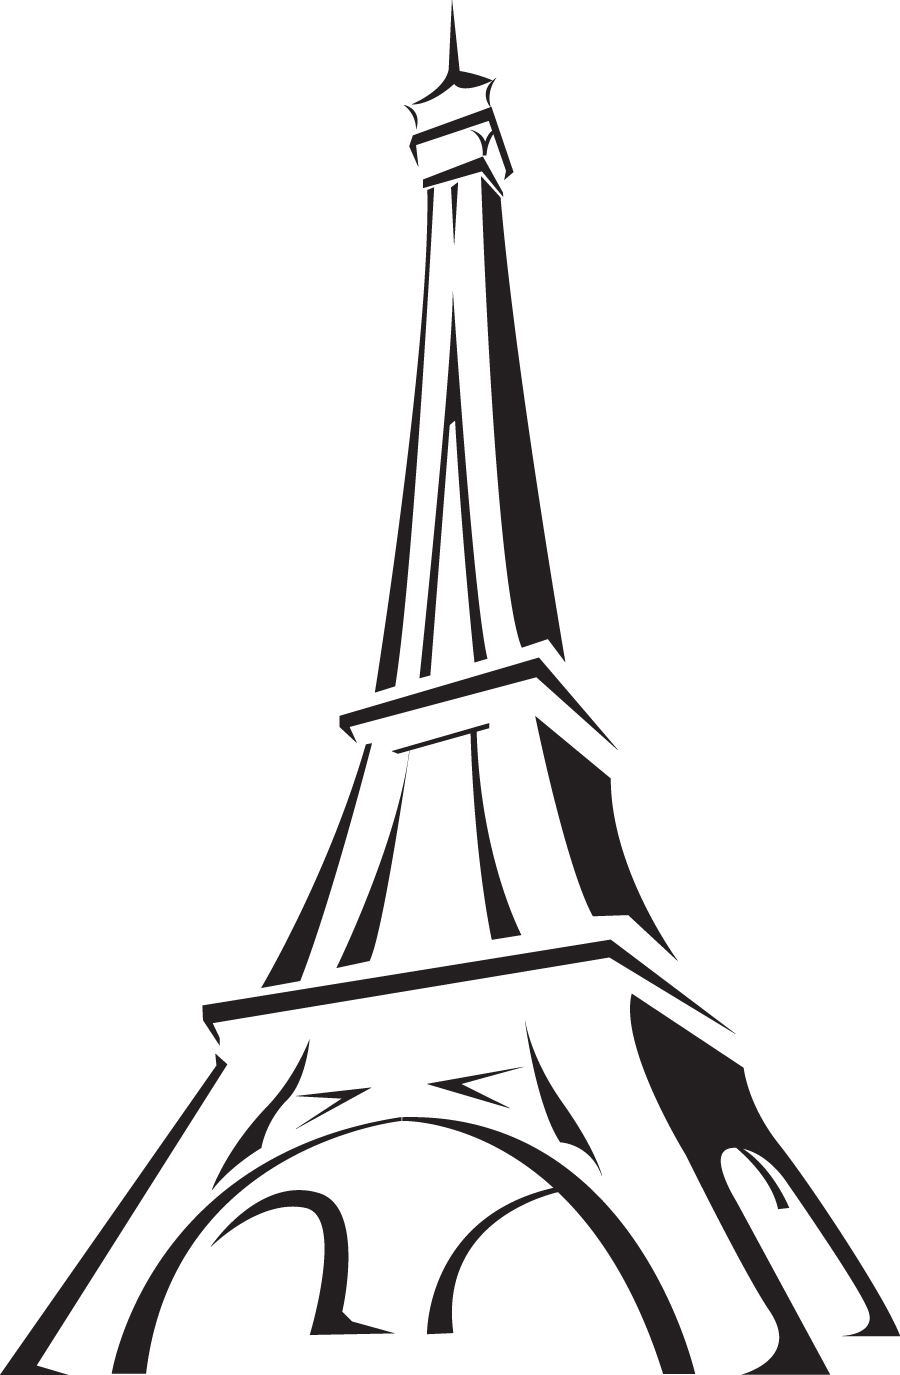 hight resolution of torre eiffel png clipart library